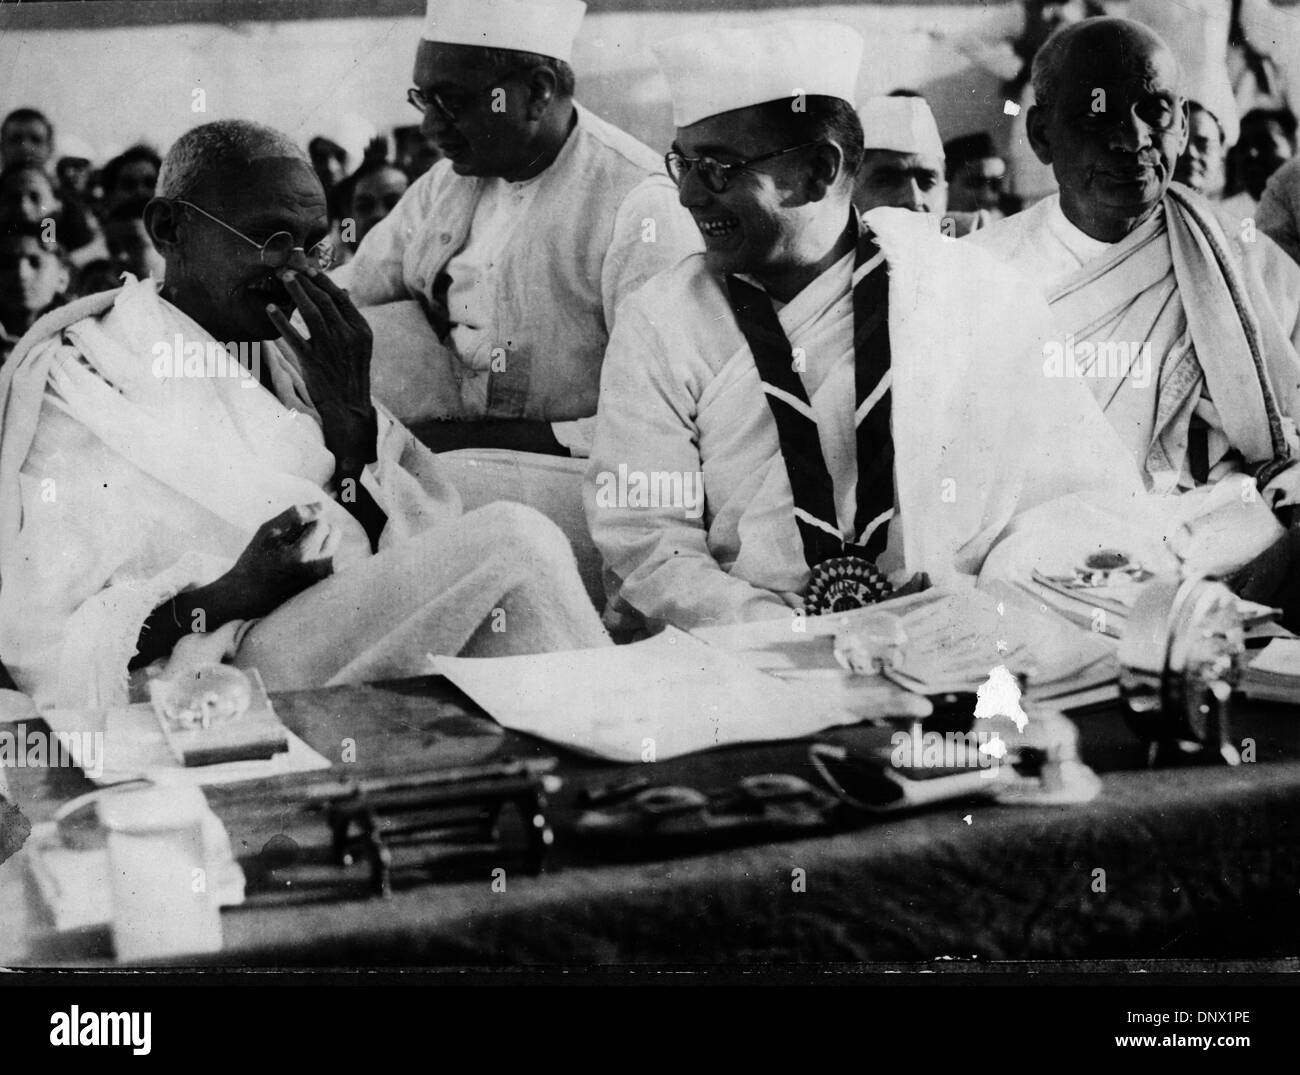 May 6, 1931 - Delhi, India - Religious leader MAHATMA GANDHI attending the 51st Indian National Congress. (Credit Image: © KEYSTONE Pictures USA/ZUMAPRESS.com) - Stock Image